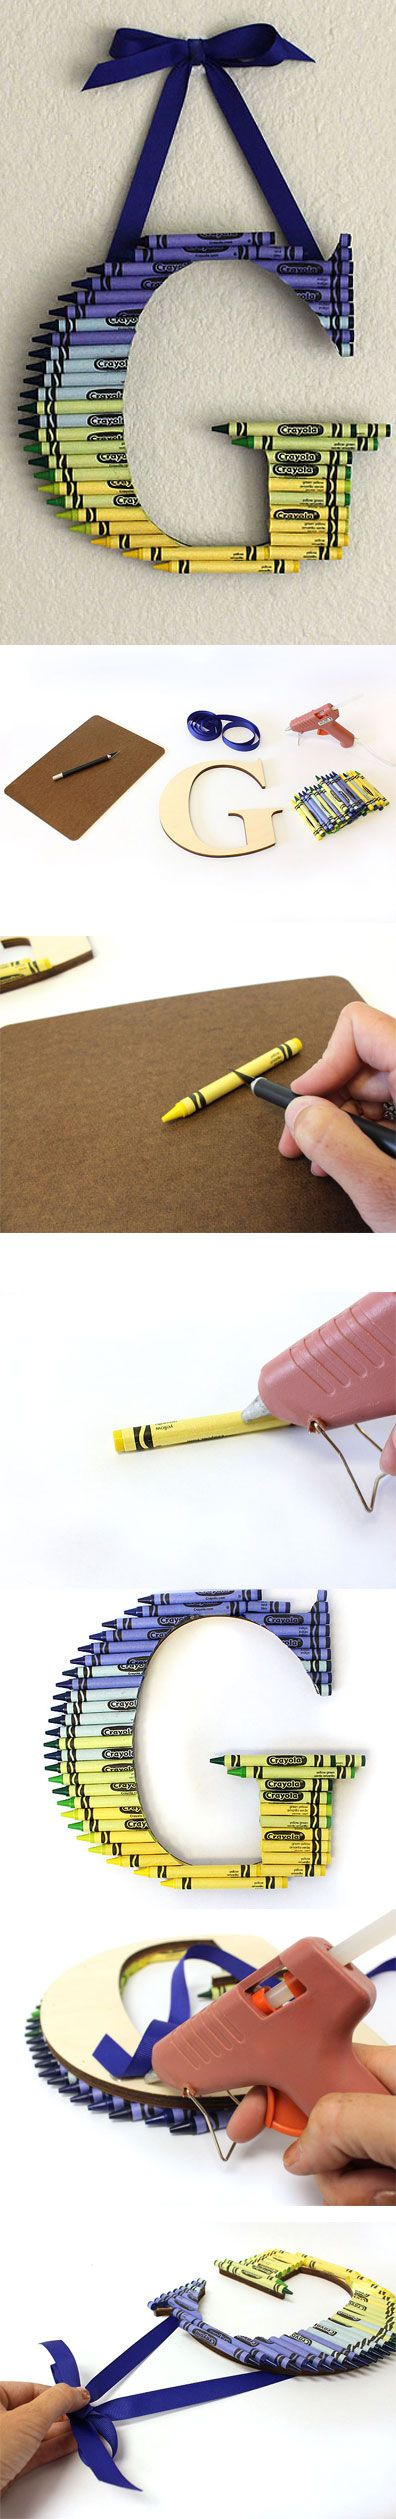 How to Create a Ombre Crayon Letter | CraftCuts.com: